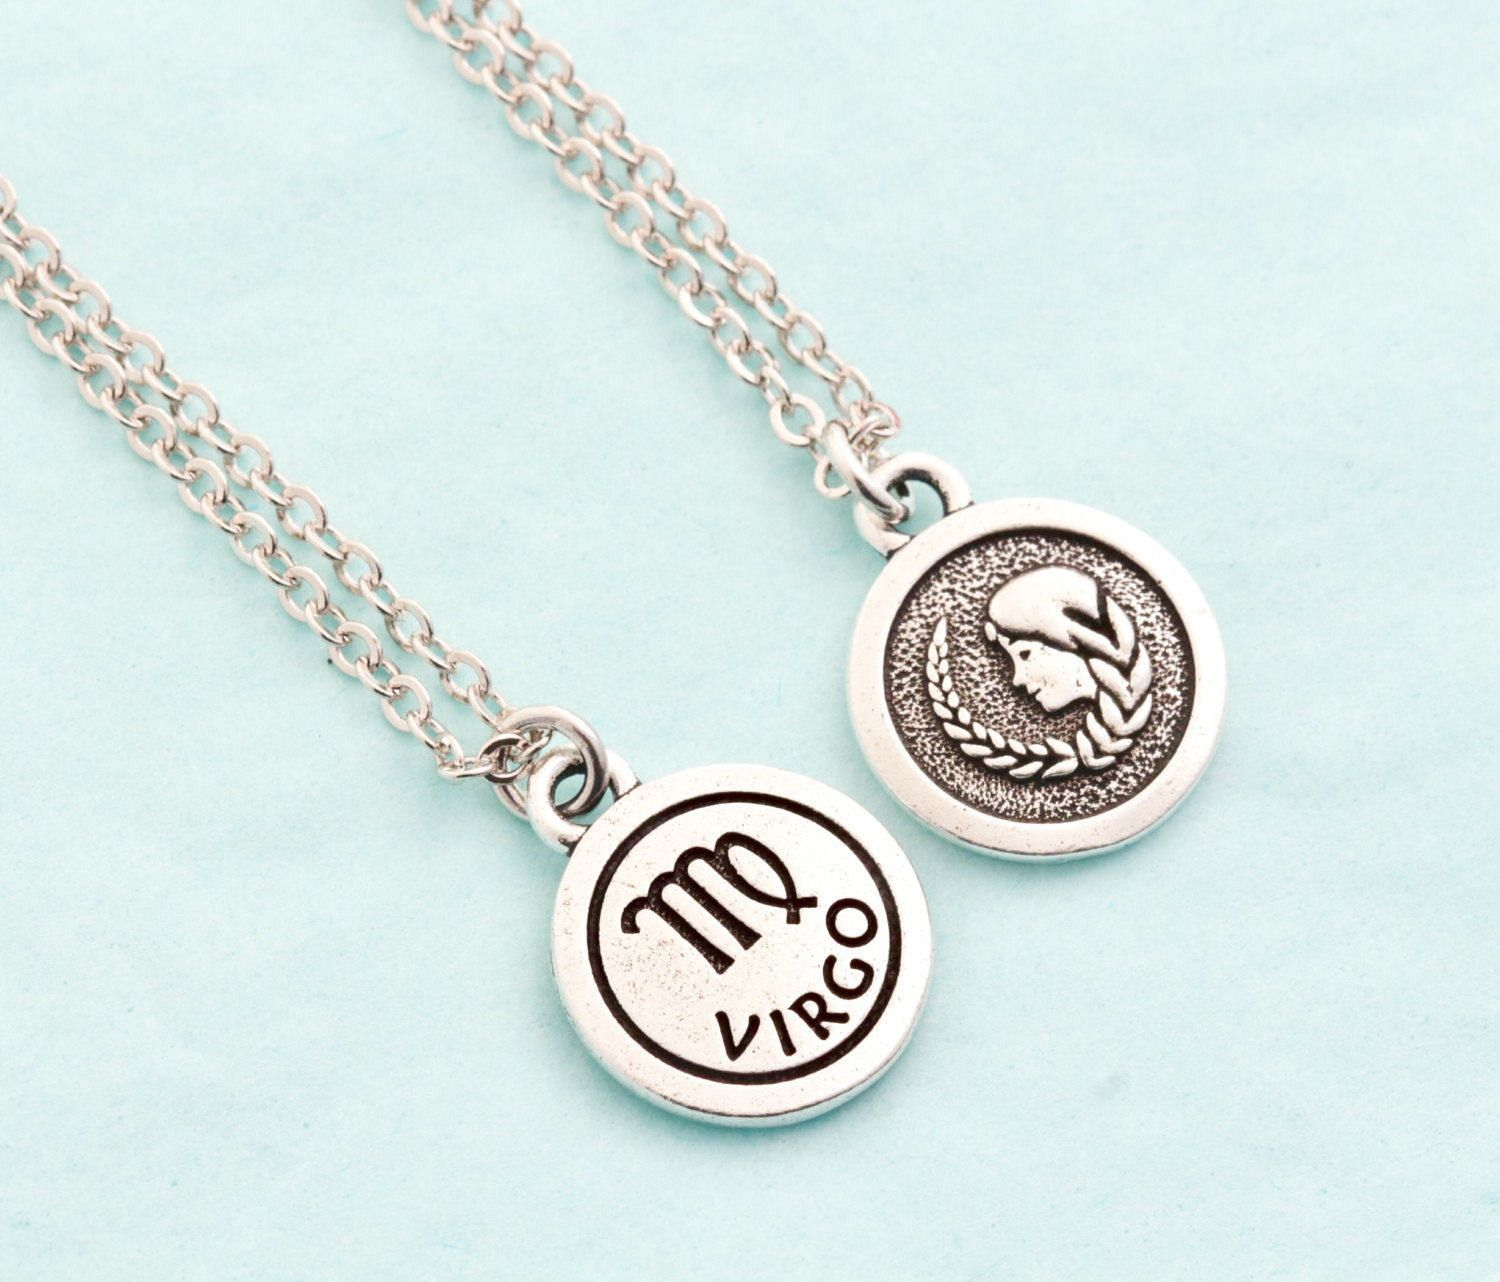 woman us virgo zodiac necklaces necklace